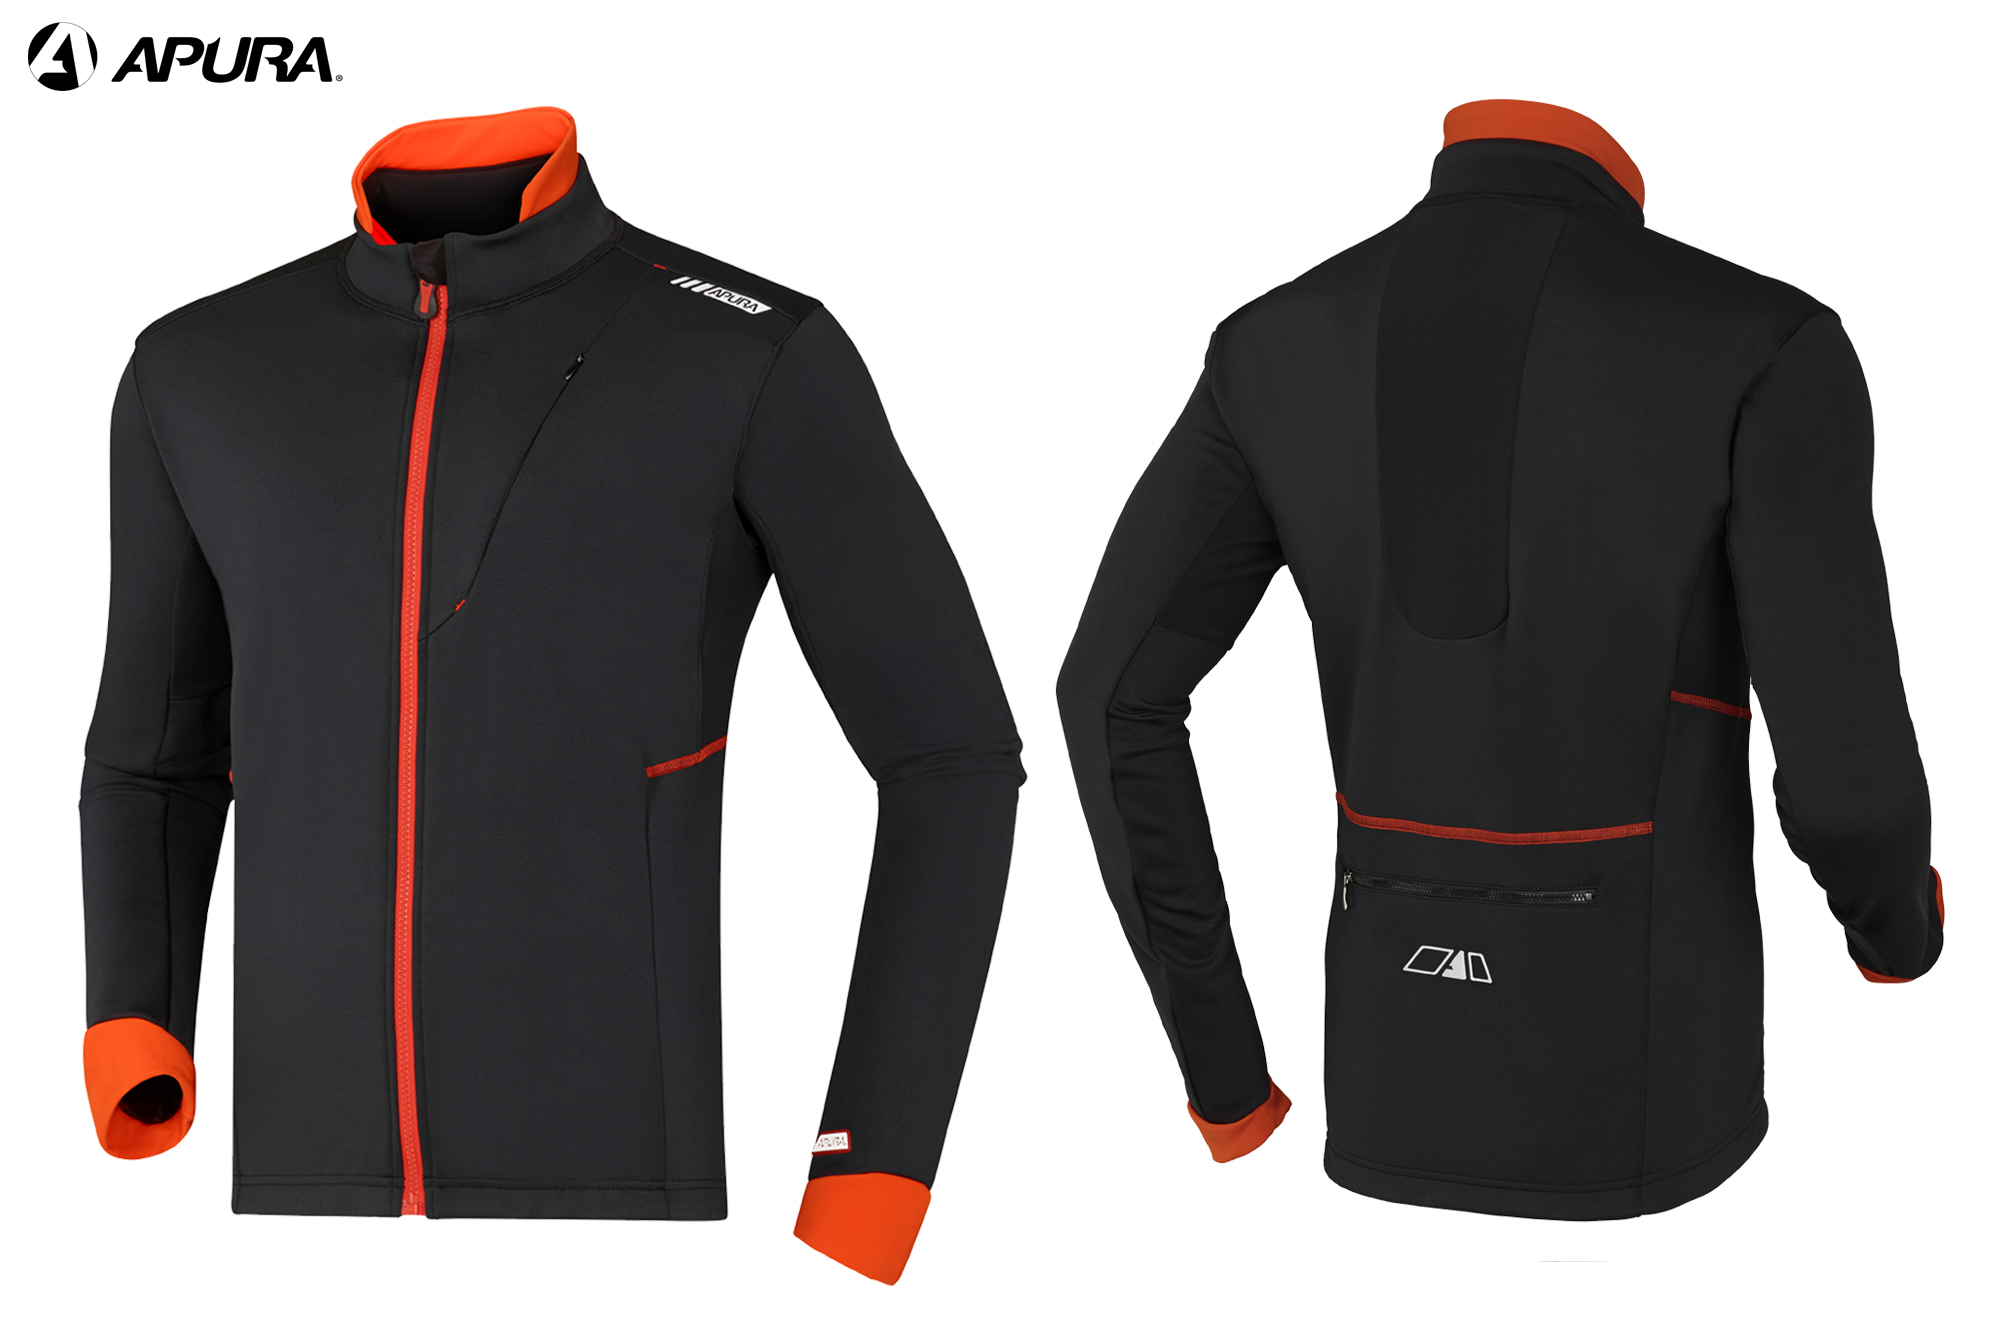 Apura Winterjacke Asset 2.0 schwarz-orange